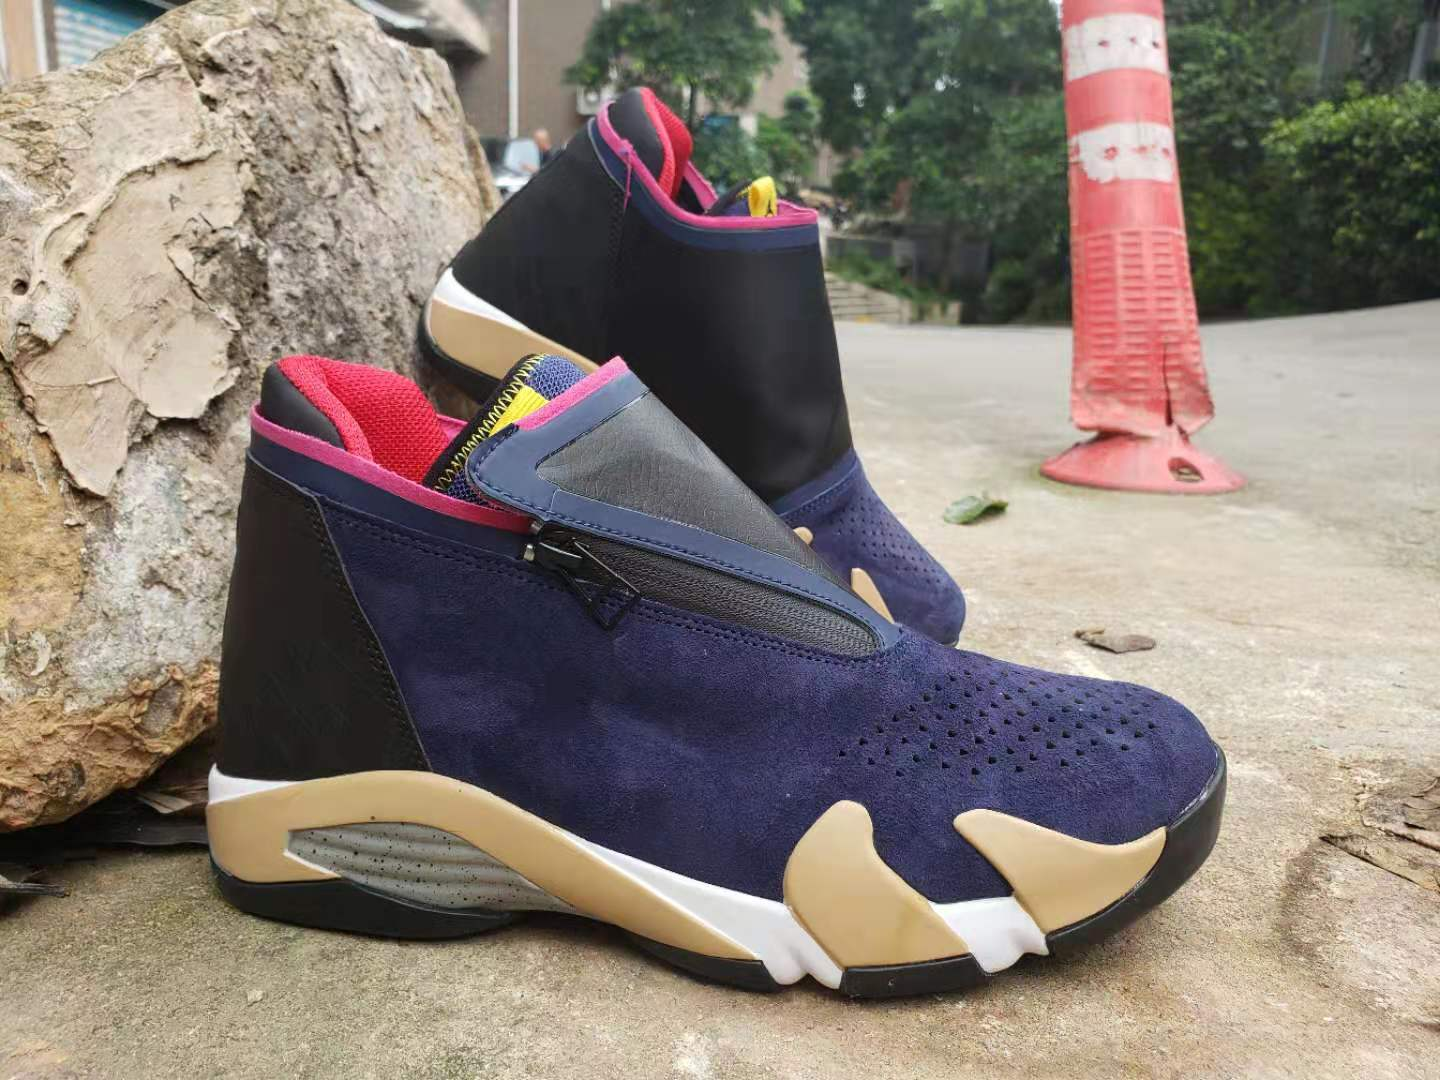 New Air Jordan 14 Retro Zipper Blue Brown Black